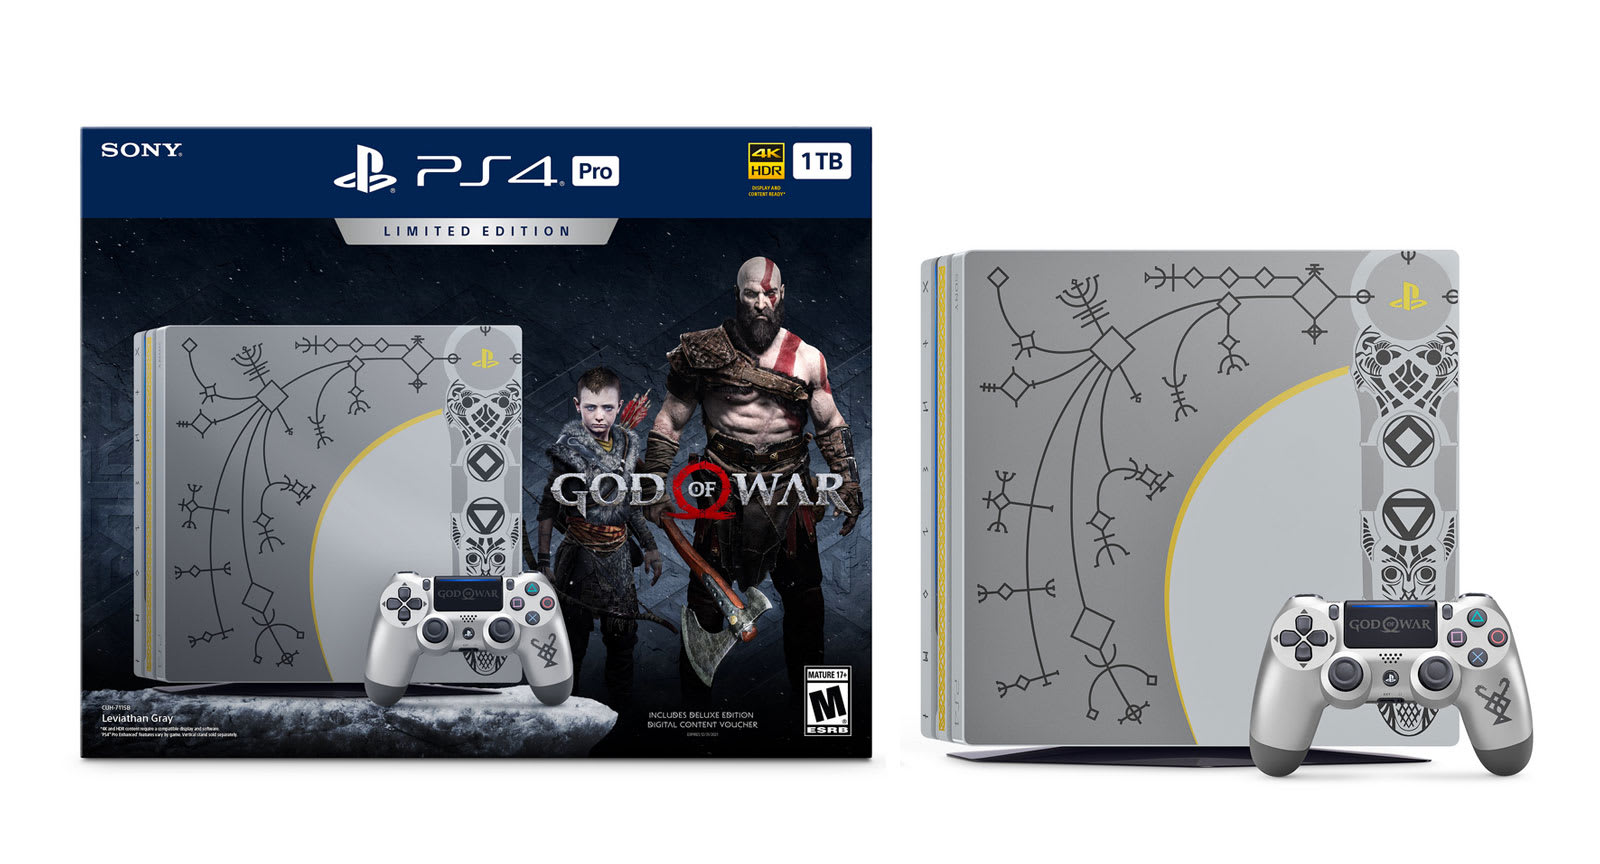 Sony S Latest Ps4 Pro Bundle Is An Ode To God Of War